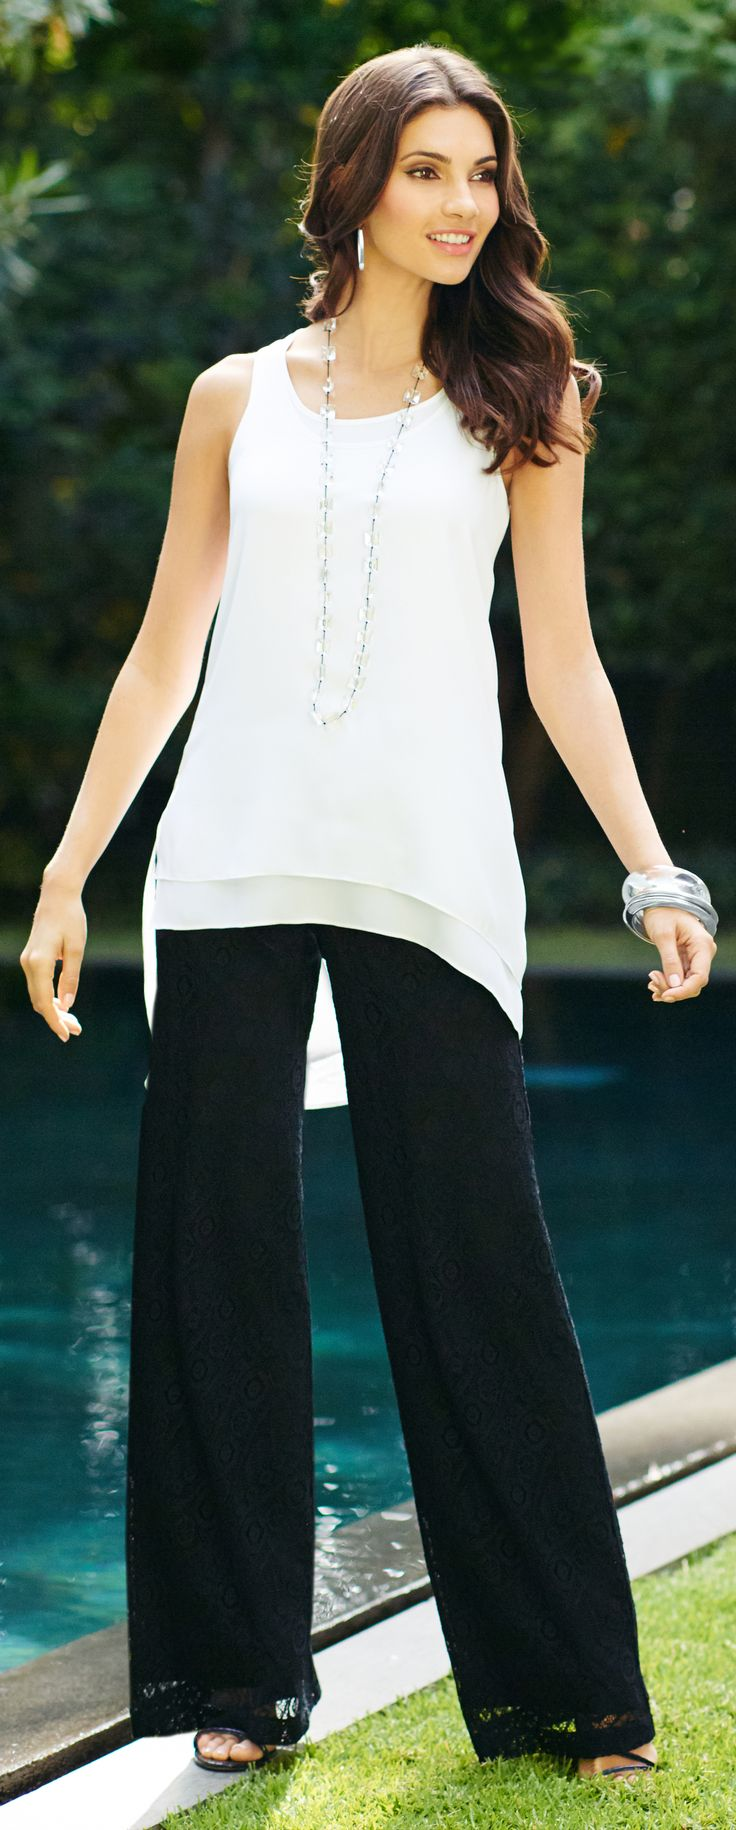 The lace palazzo: Summer's must-have pant is long and languid in black lace.